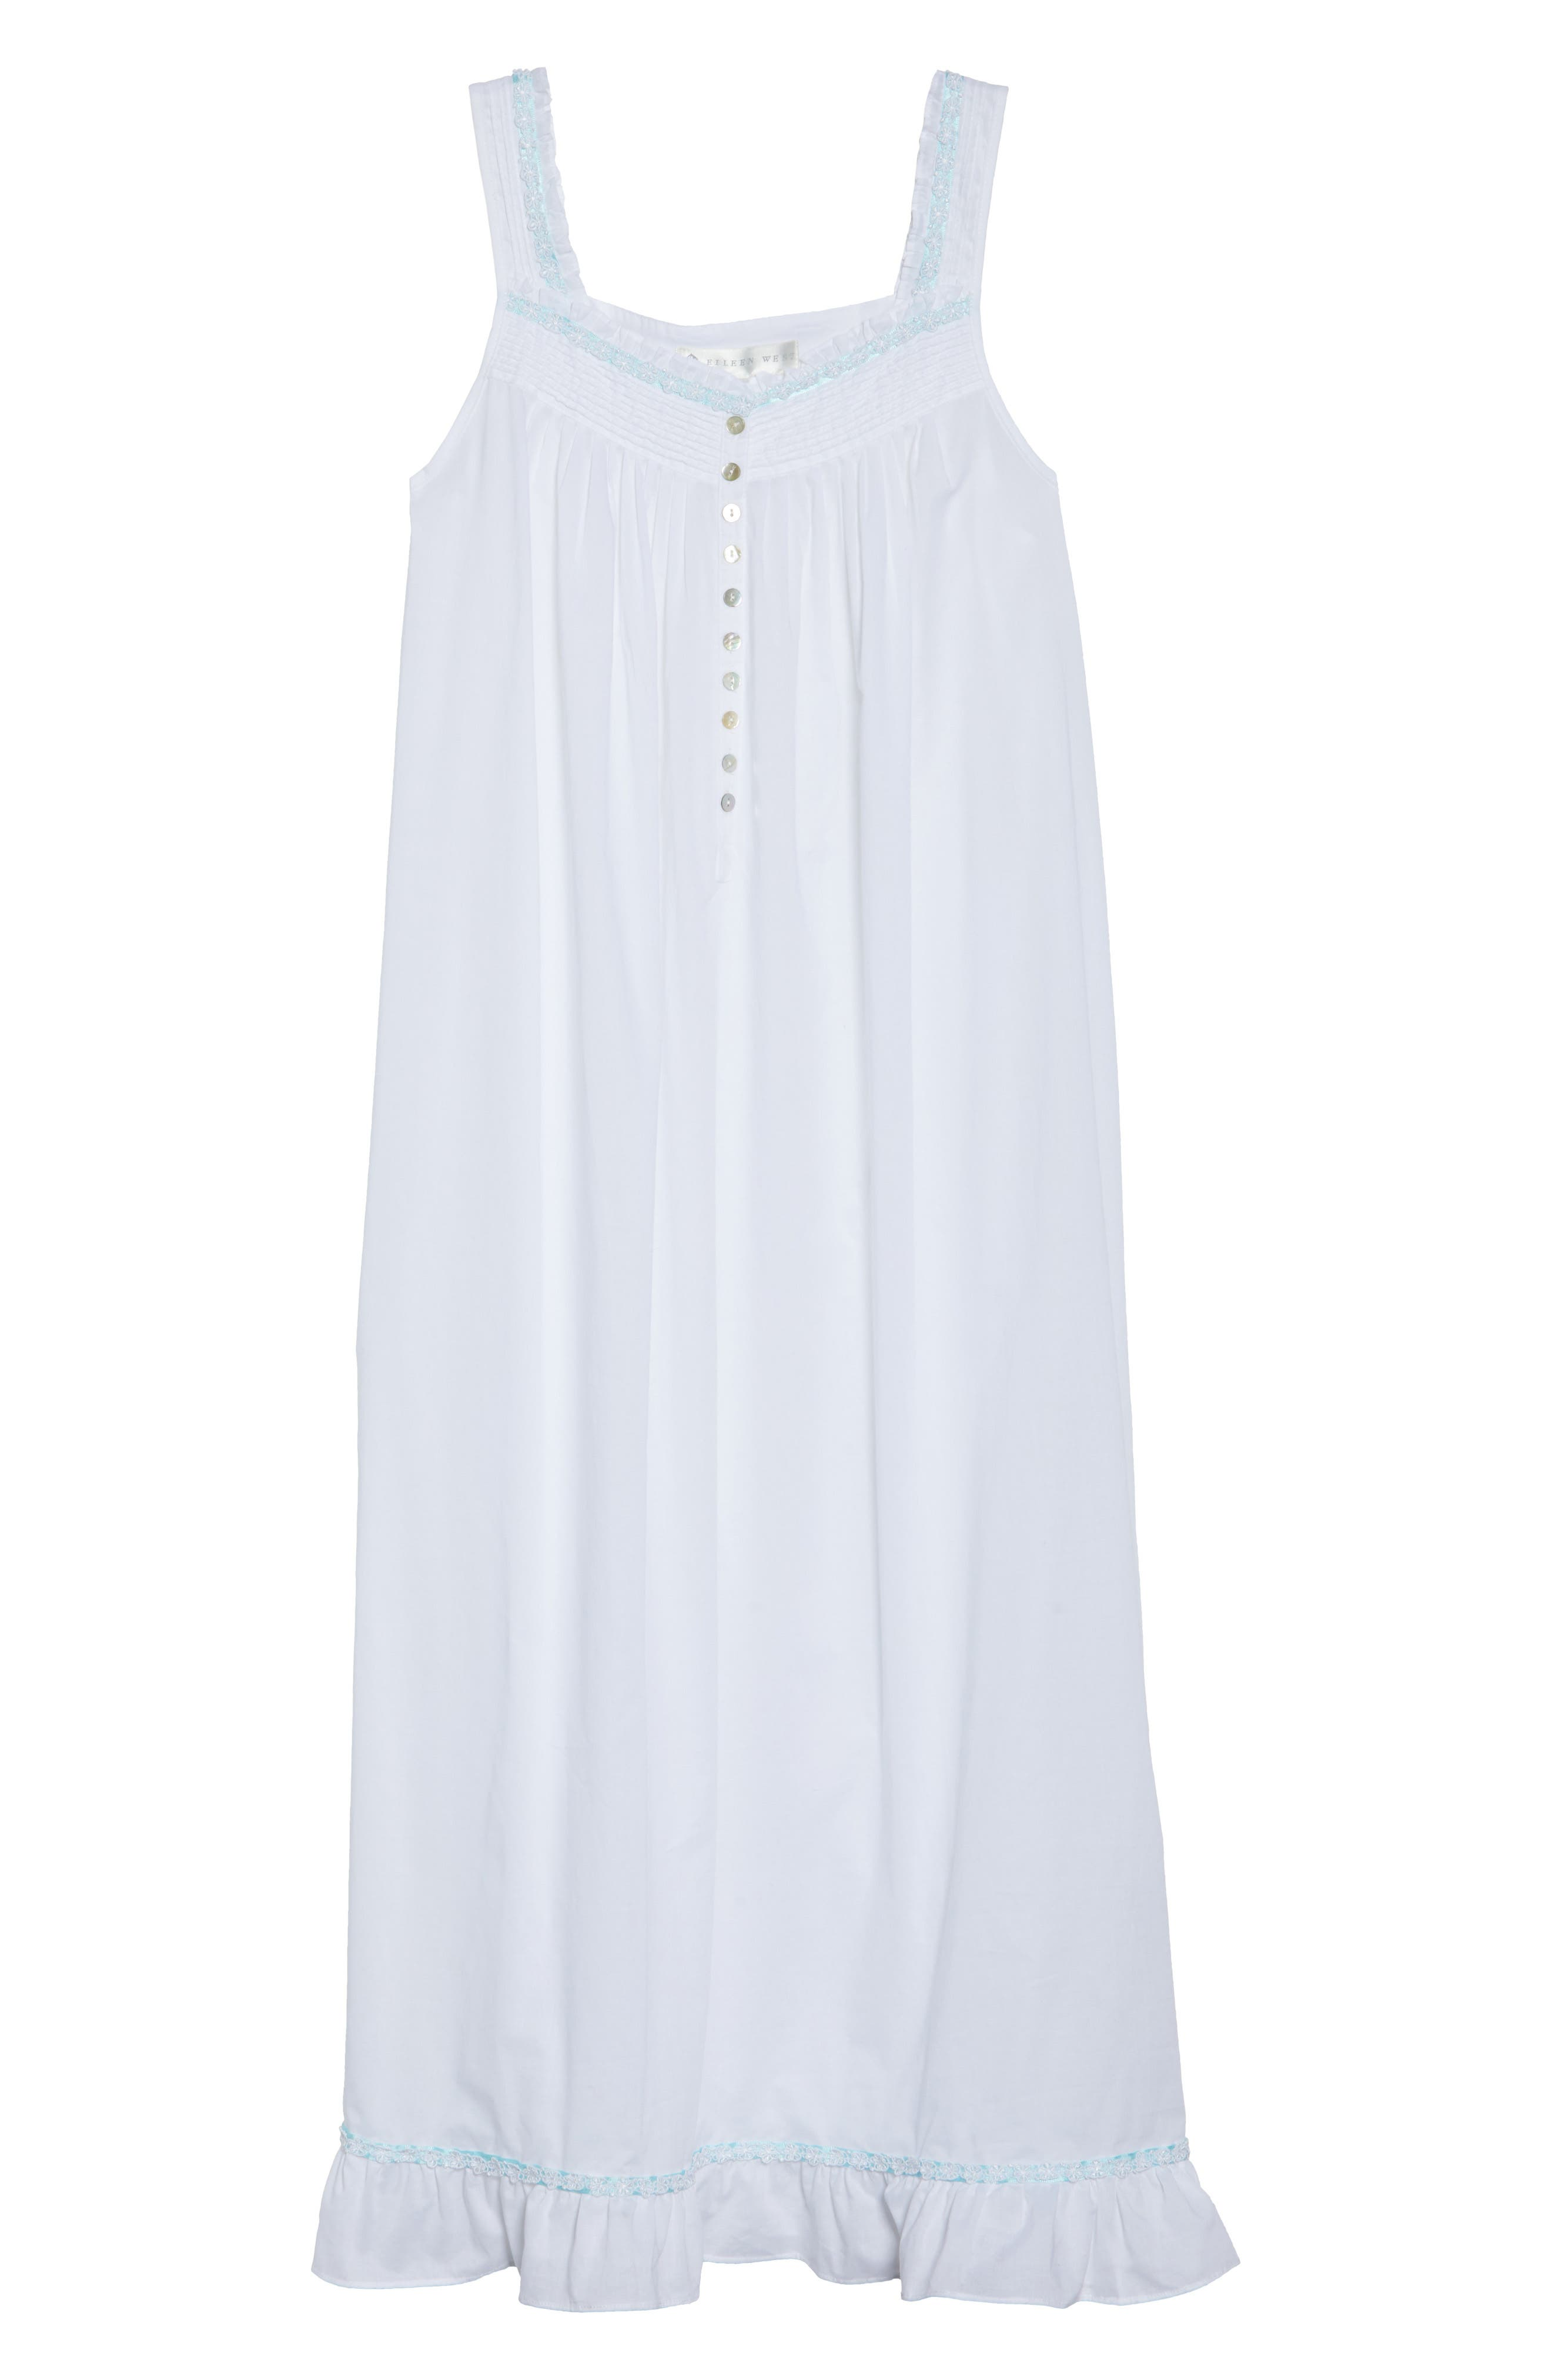 Cotton Lawn Ballet Nightgown,                             Alternate thumbnail 4, color,                             Solid White